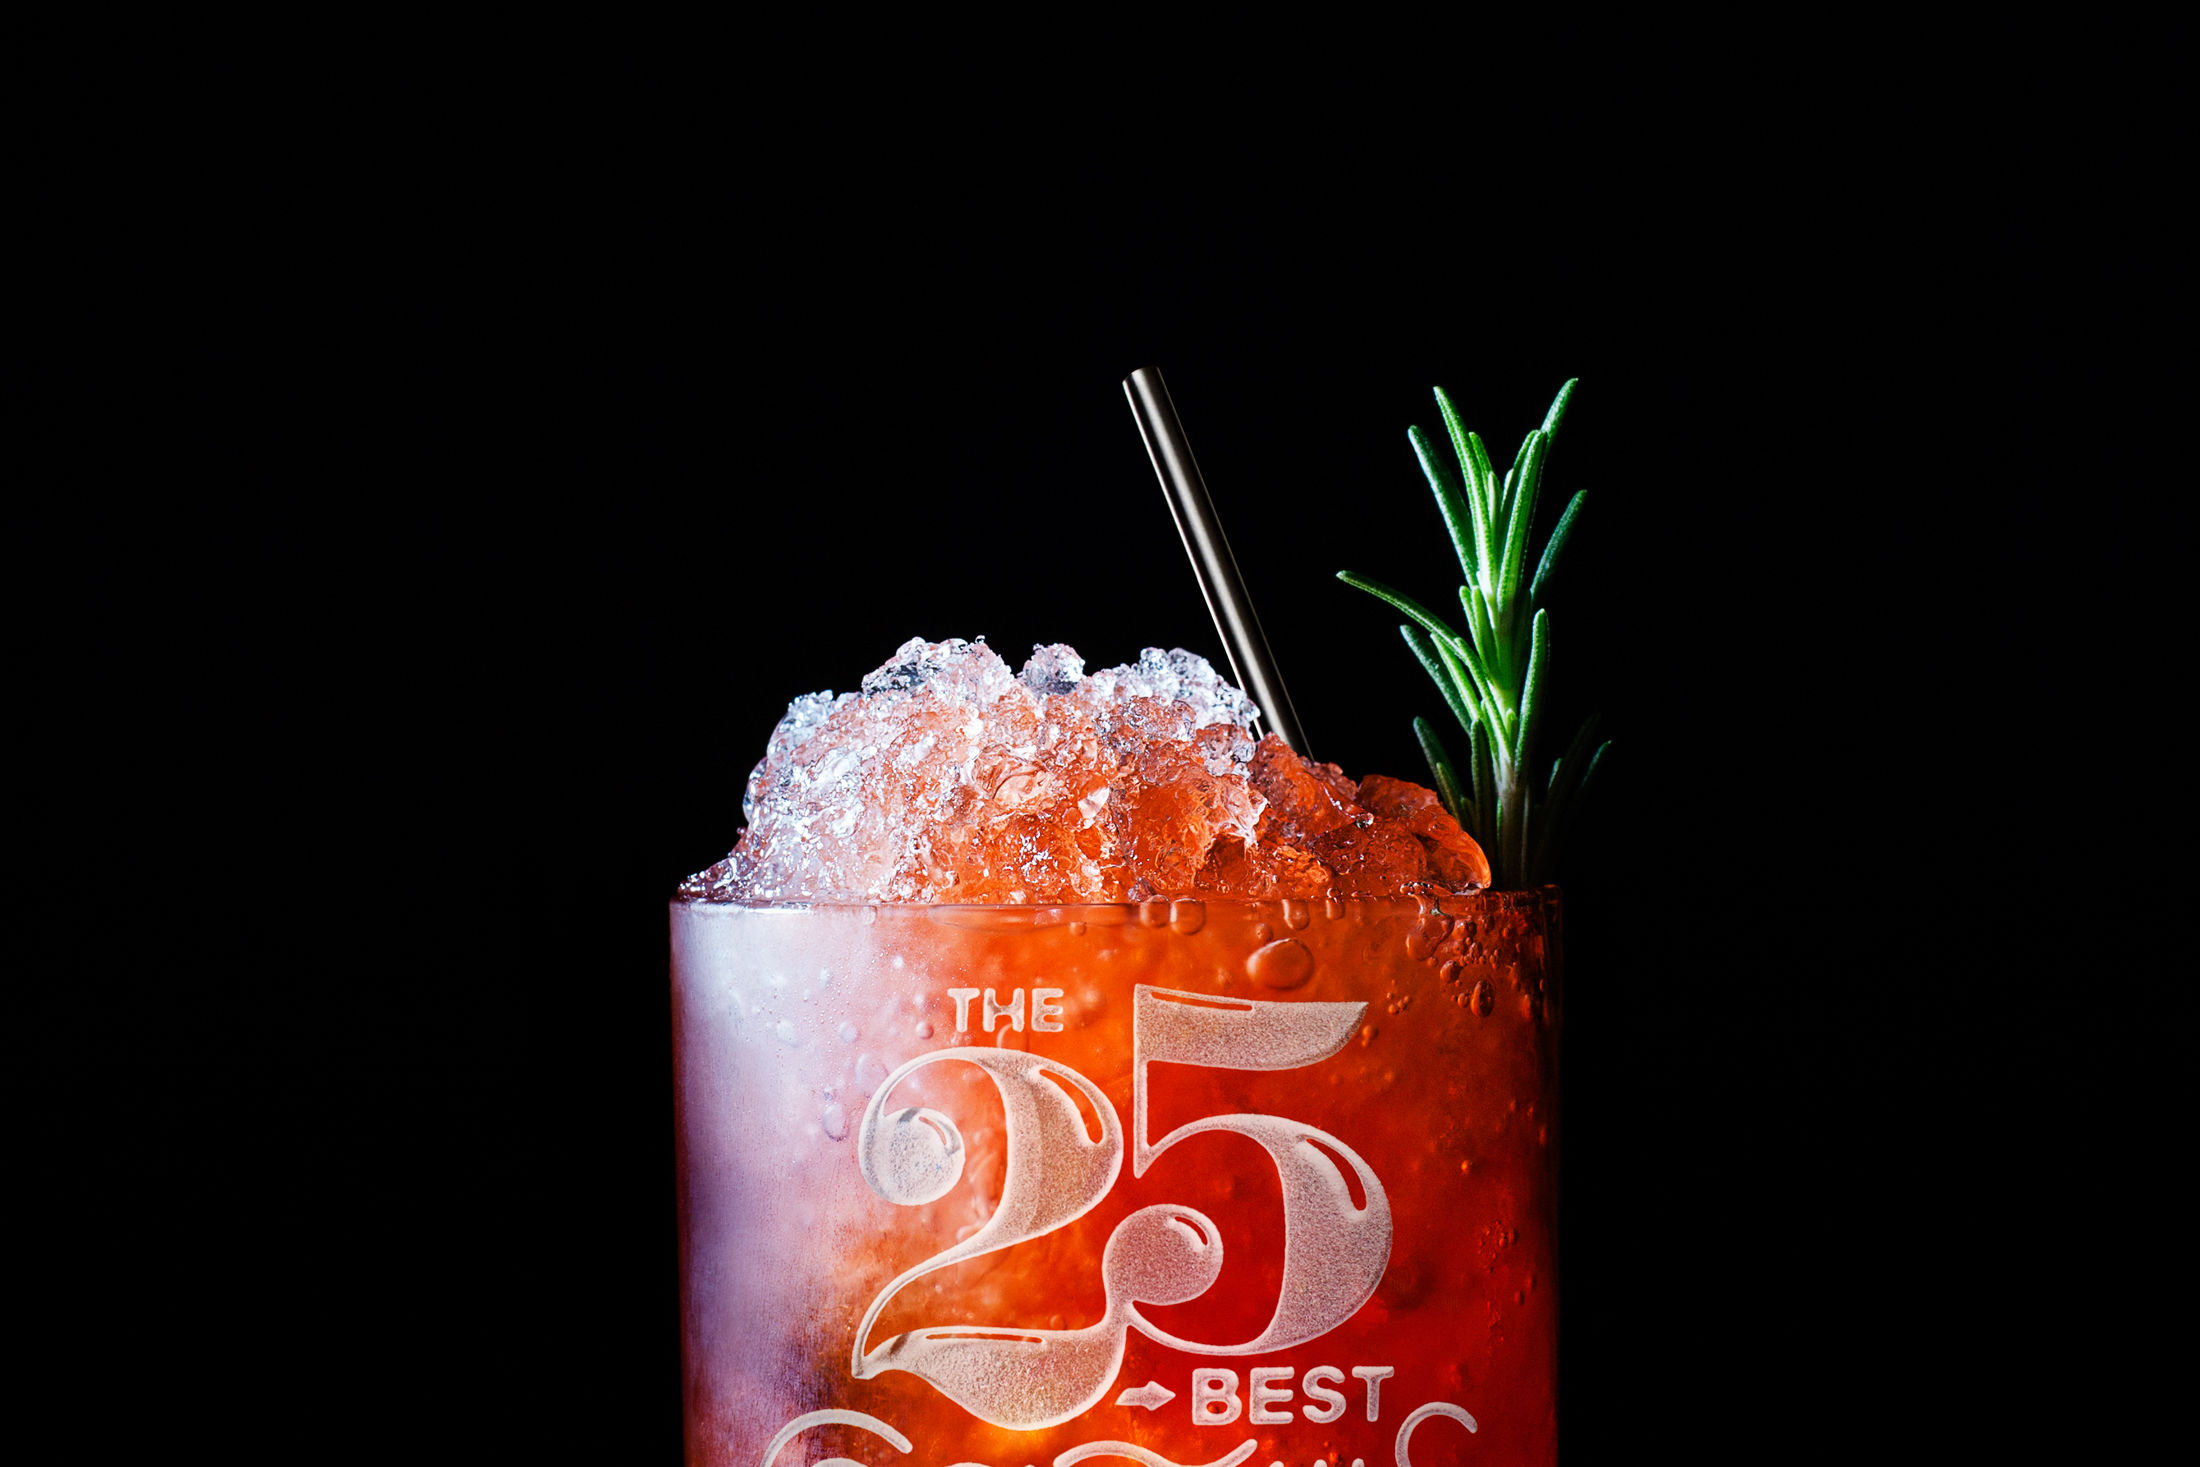 Cocktails composite 9074 master rosemary bmbwsj